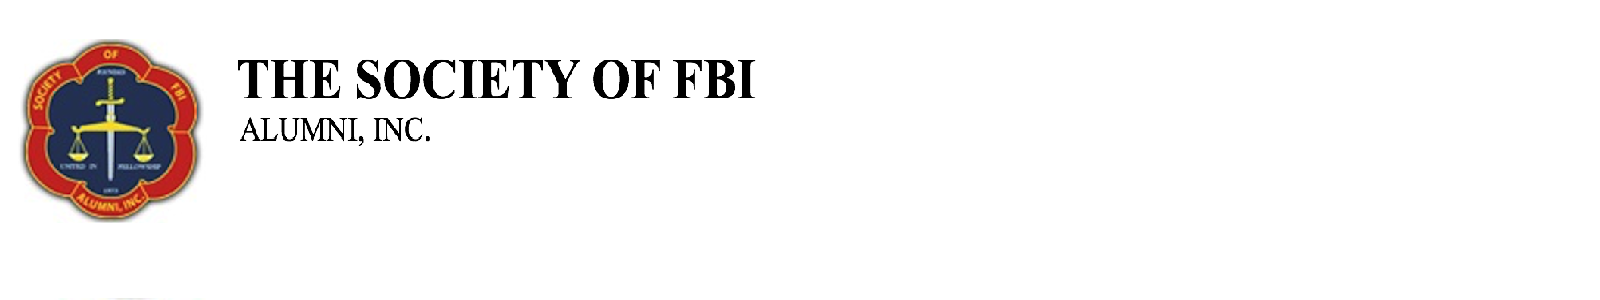 The Society of FBI Alumni Inc.